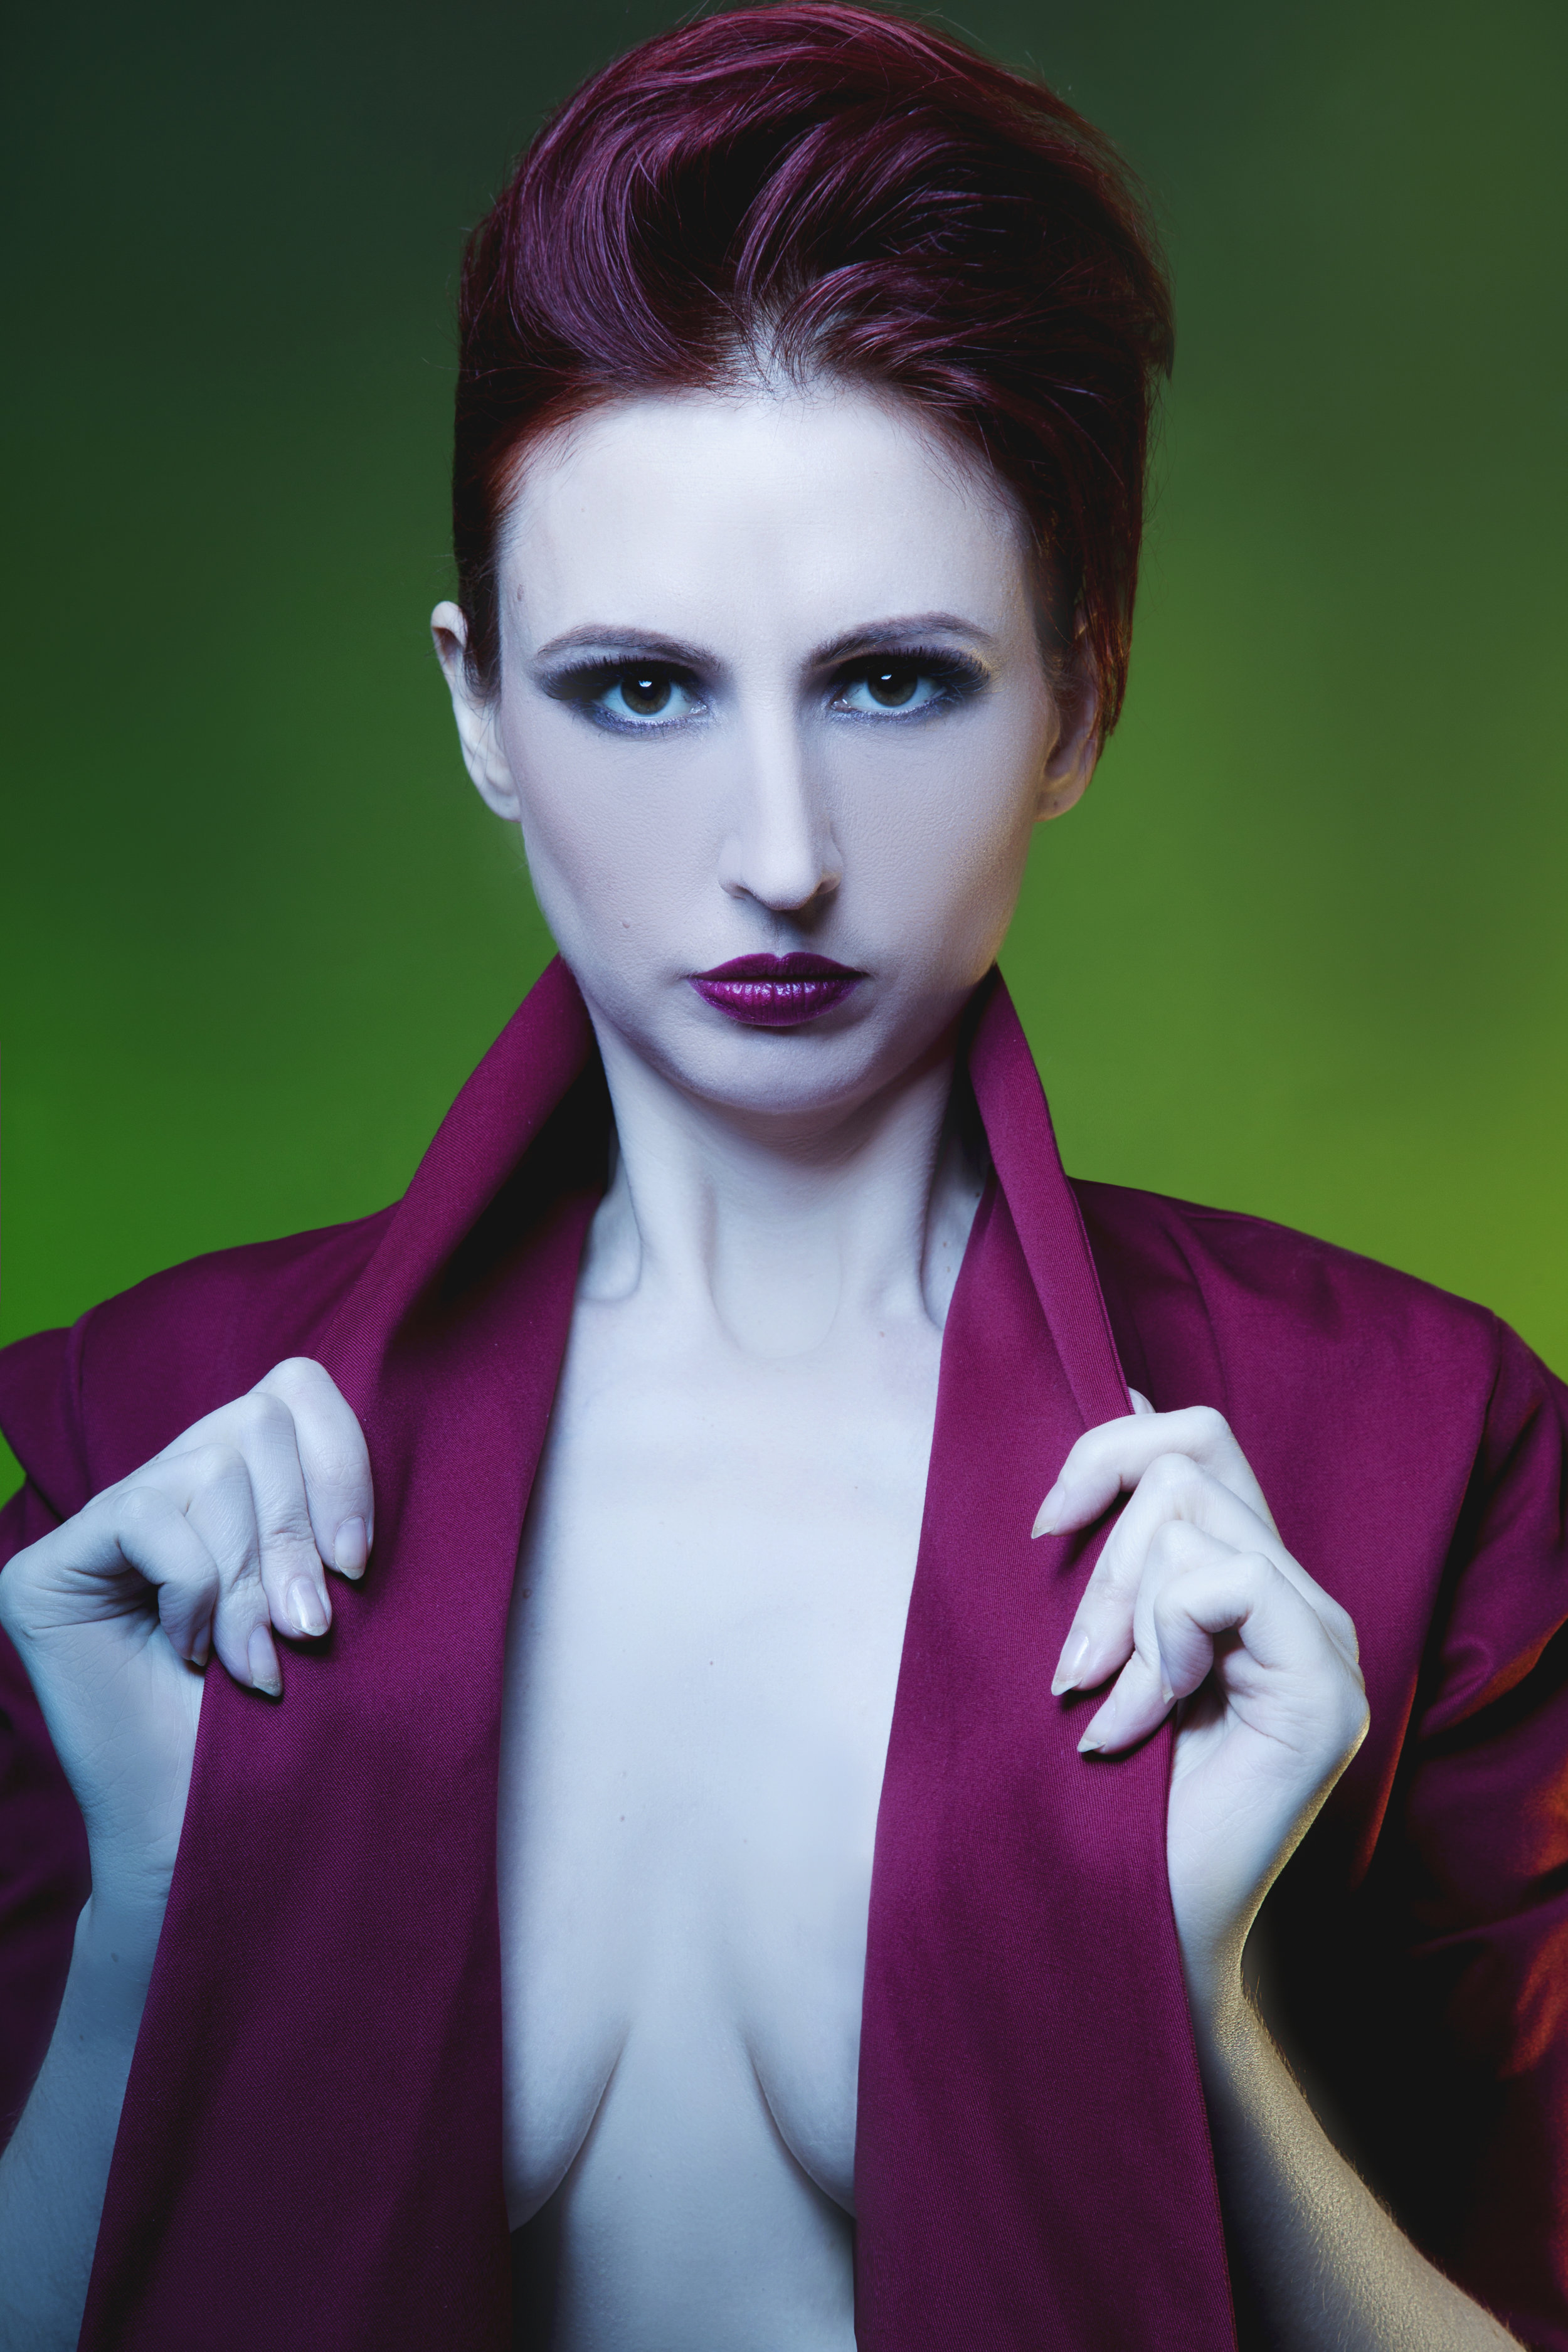 zaramia-ava-zaramiaava-leeds-fashion-designer-ethical-sustainable-red-versatile-drape-wrap-mai-cowl-jacket-dress-styling-studio-womenswear-models-photoshoot-vibrant-colour-1